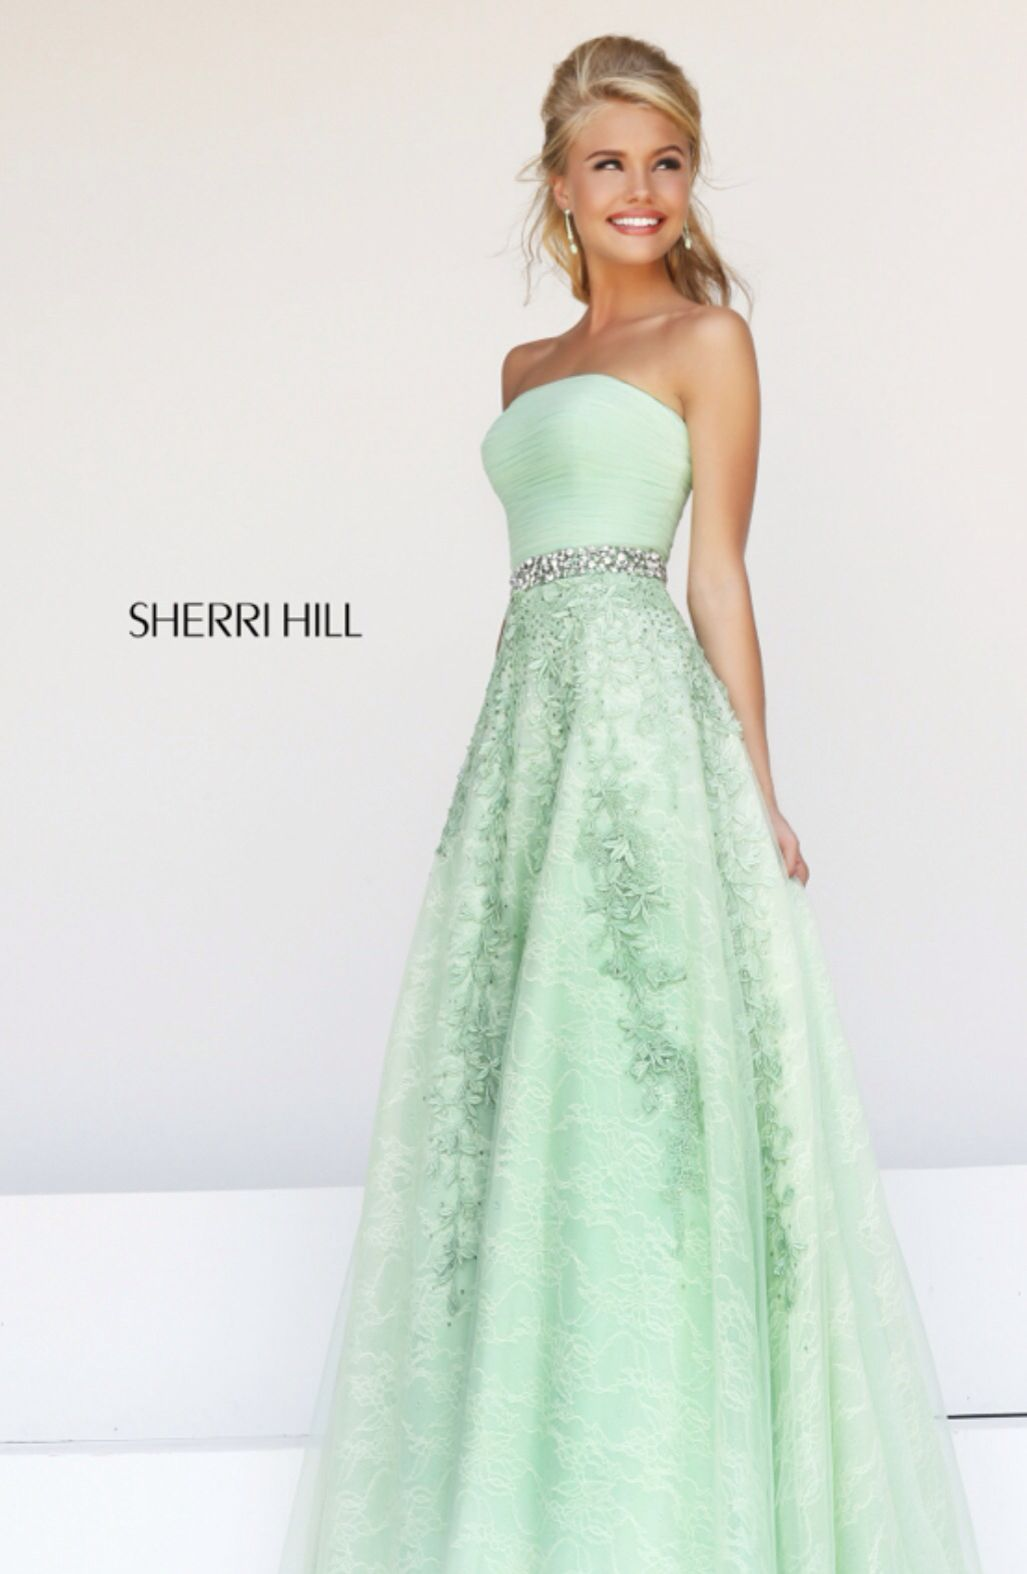 Green dress prom  Pin by Chloe Brown on cute dresses  Pinterest  Prom Gowns and Clothes